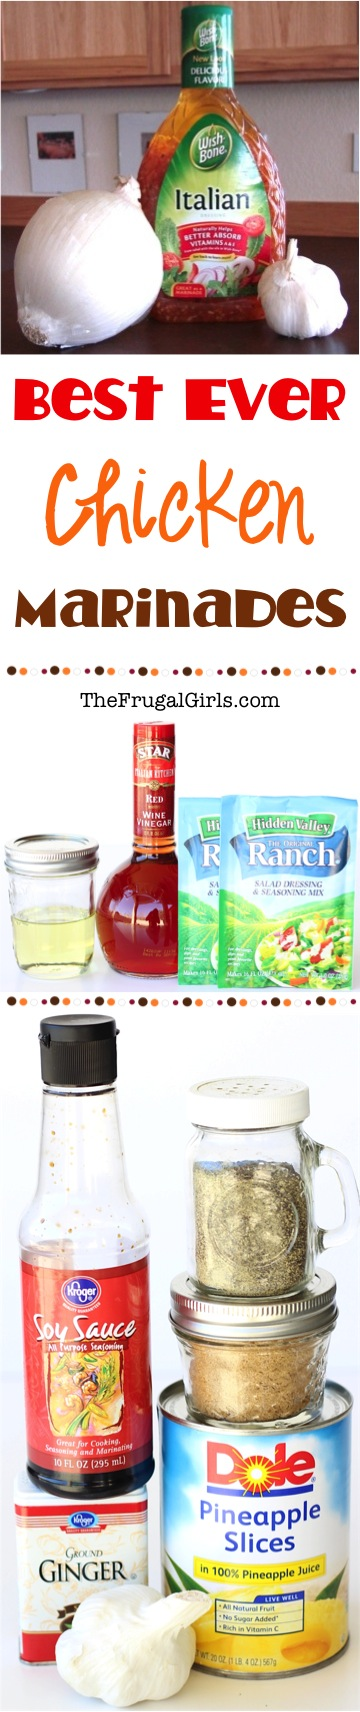 Best Chicken Marinade Recipes from TheFrugalGirls.com